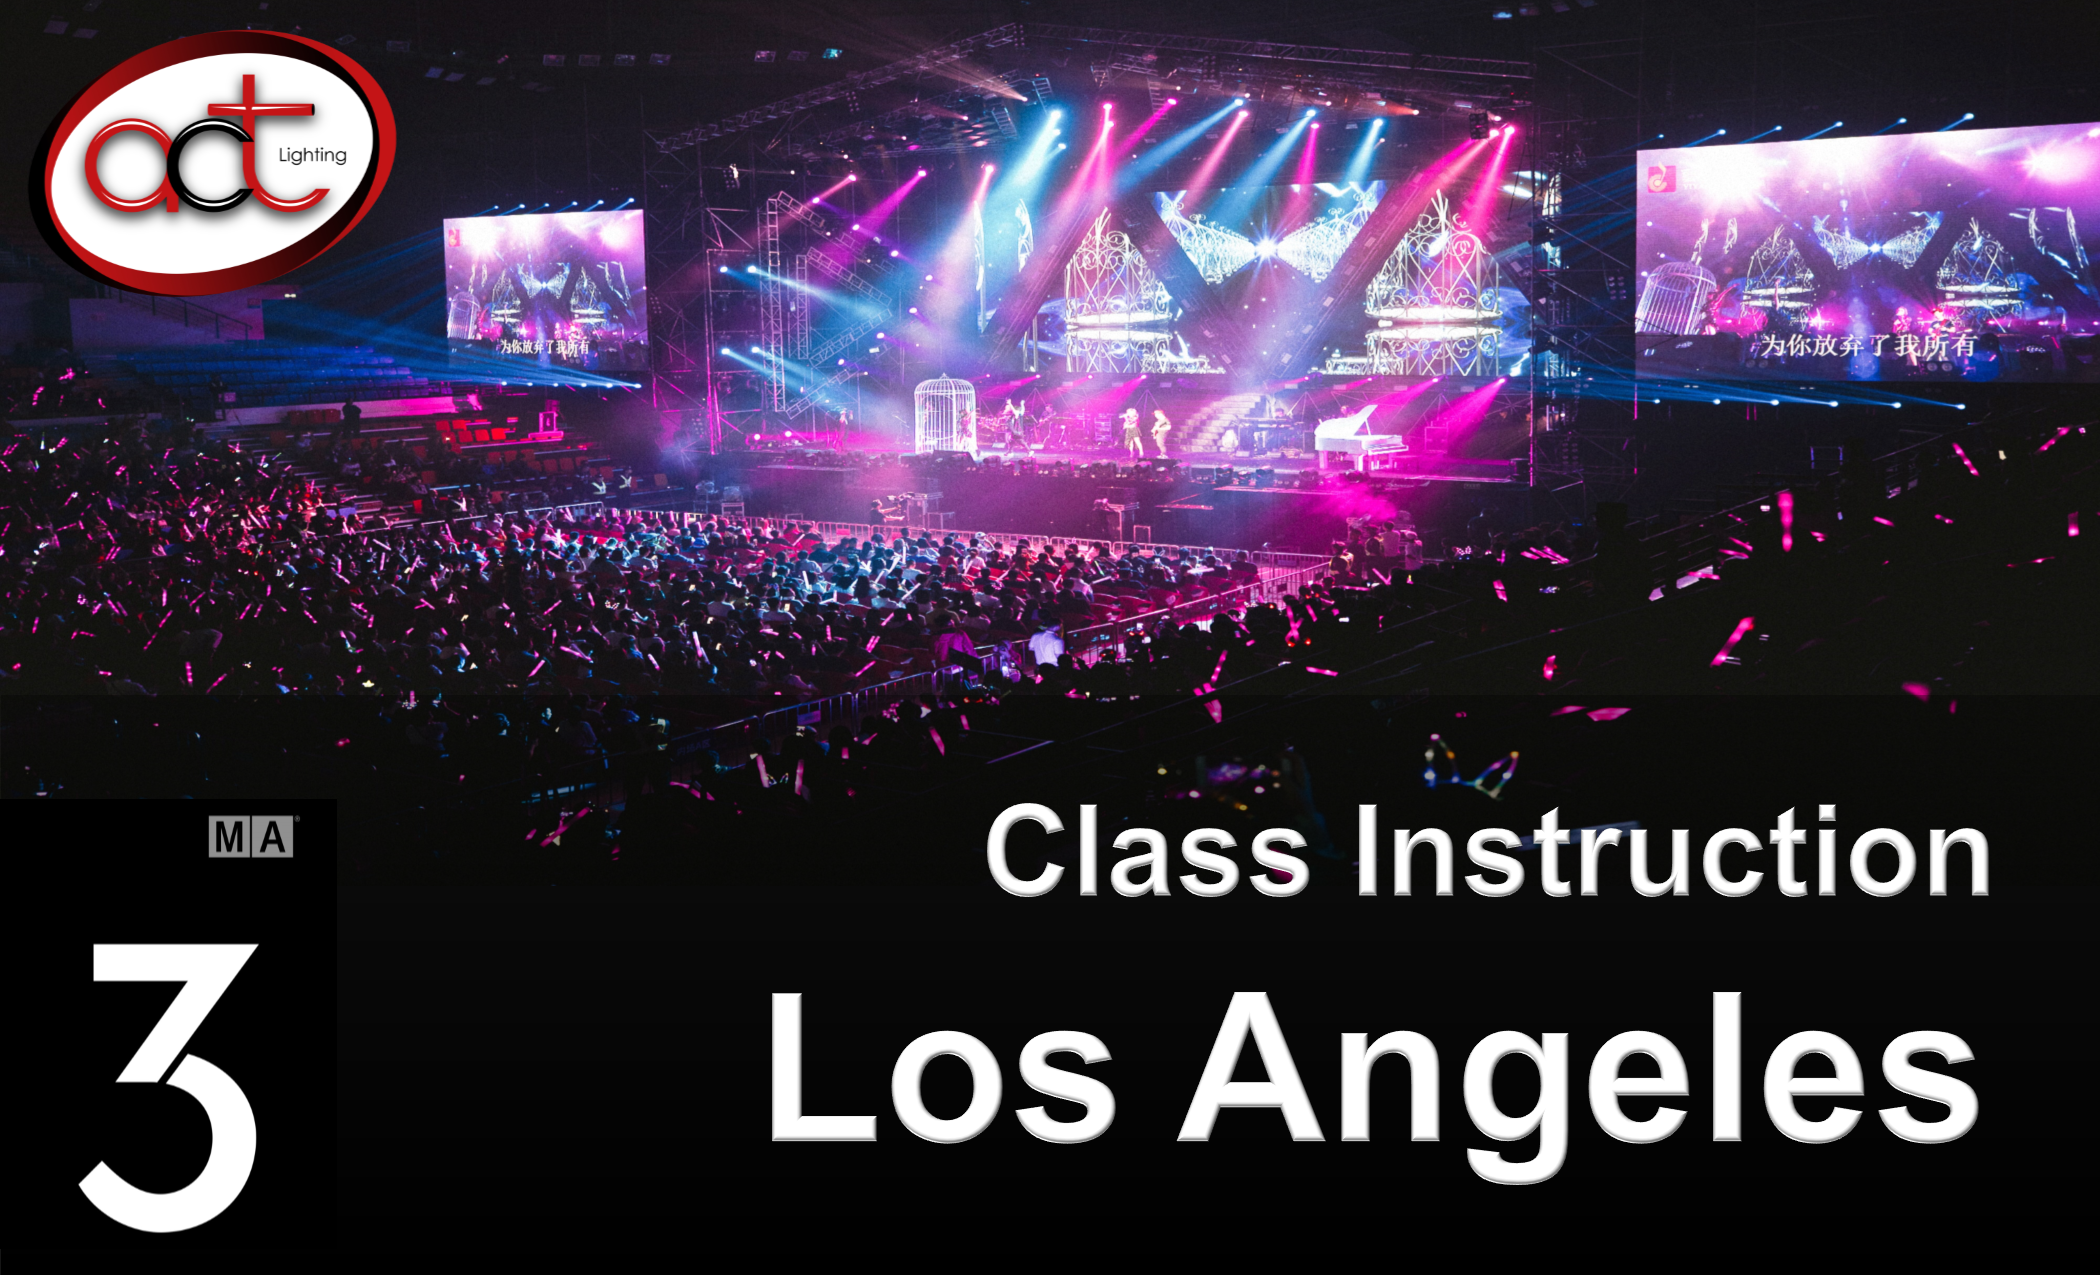 Los Angeles - Class Instruction